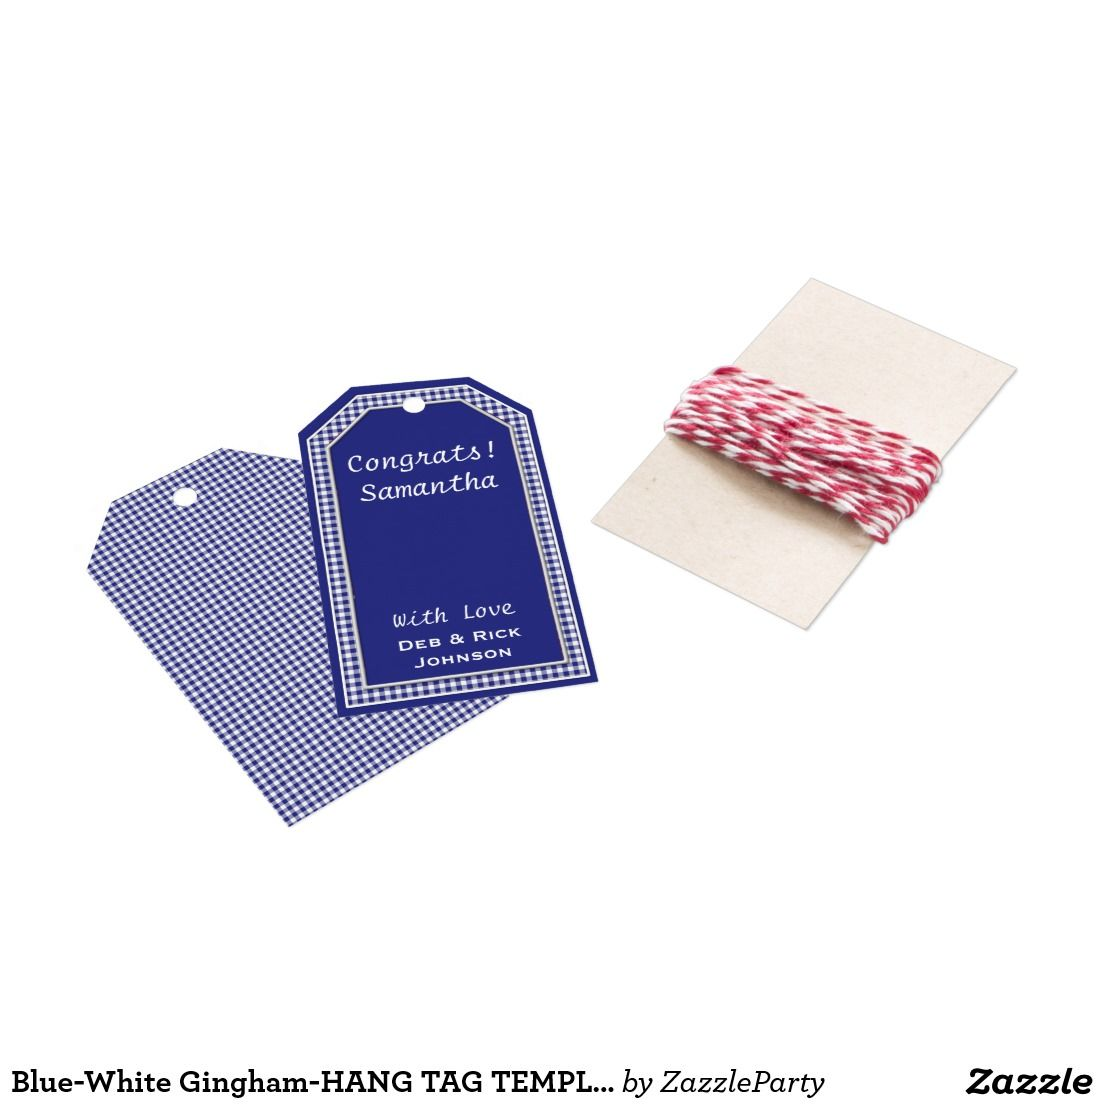 BlueWhite GinghamHang Tag Template Zazzle Blue Gingham